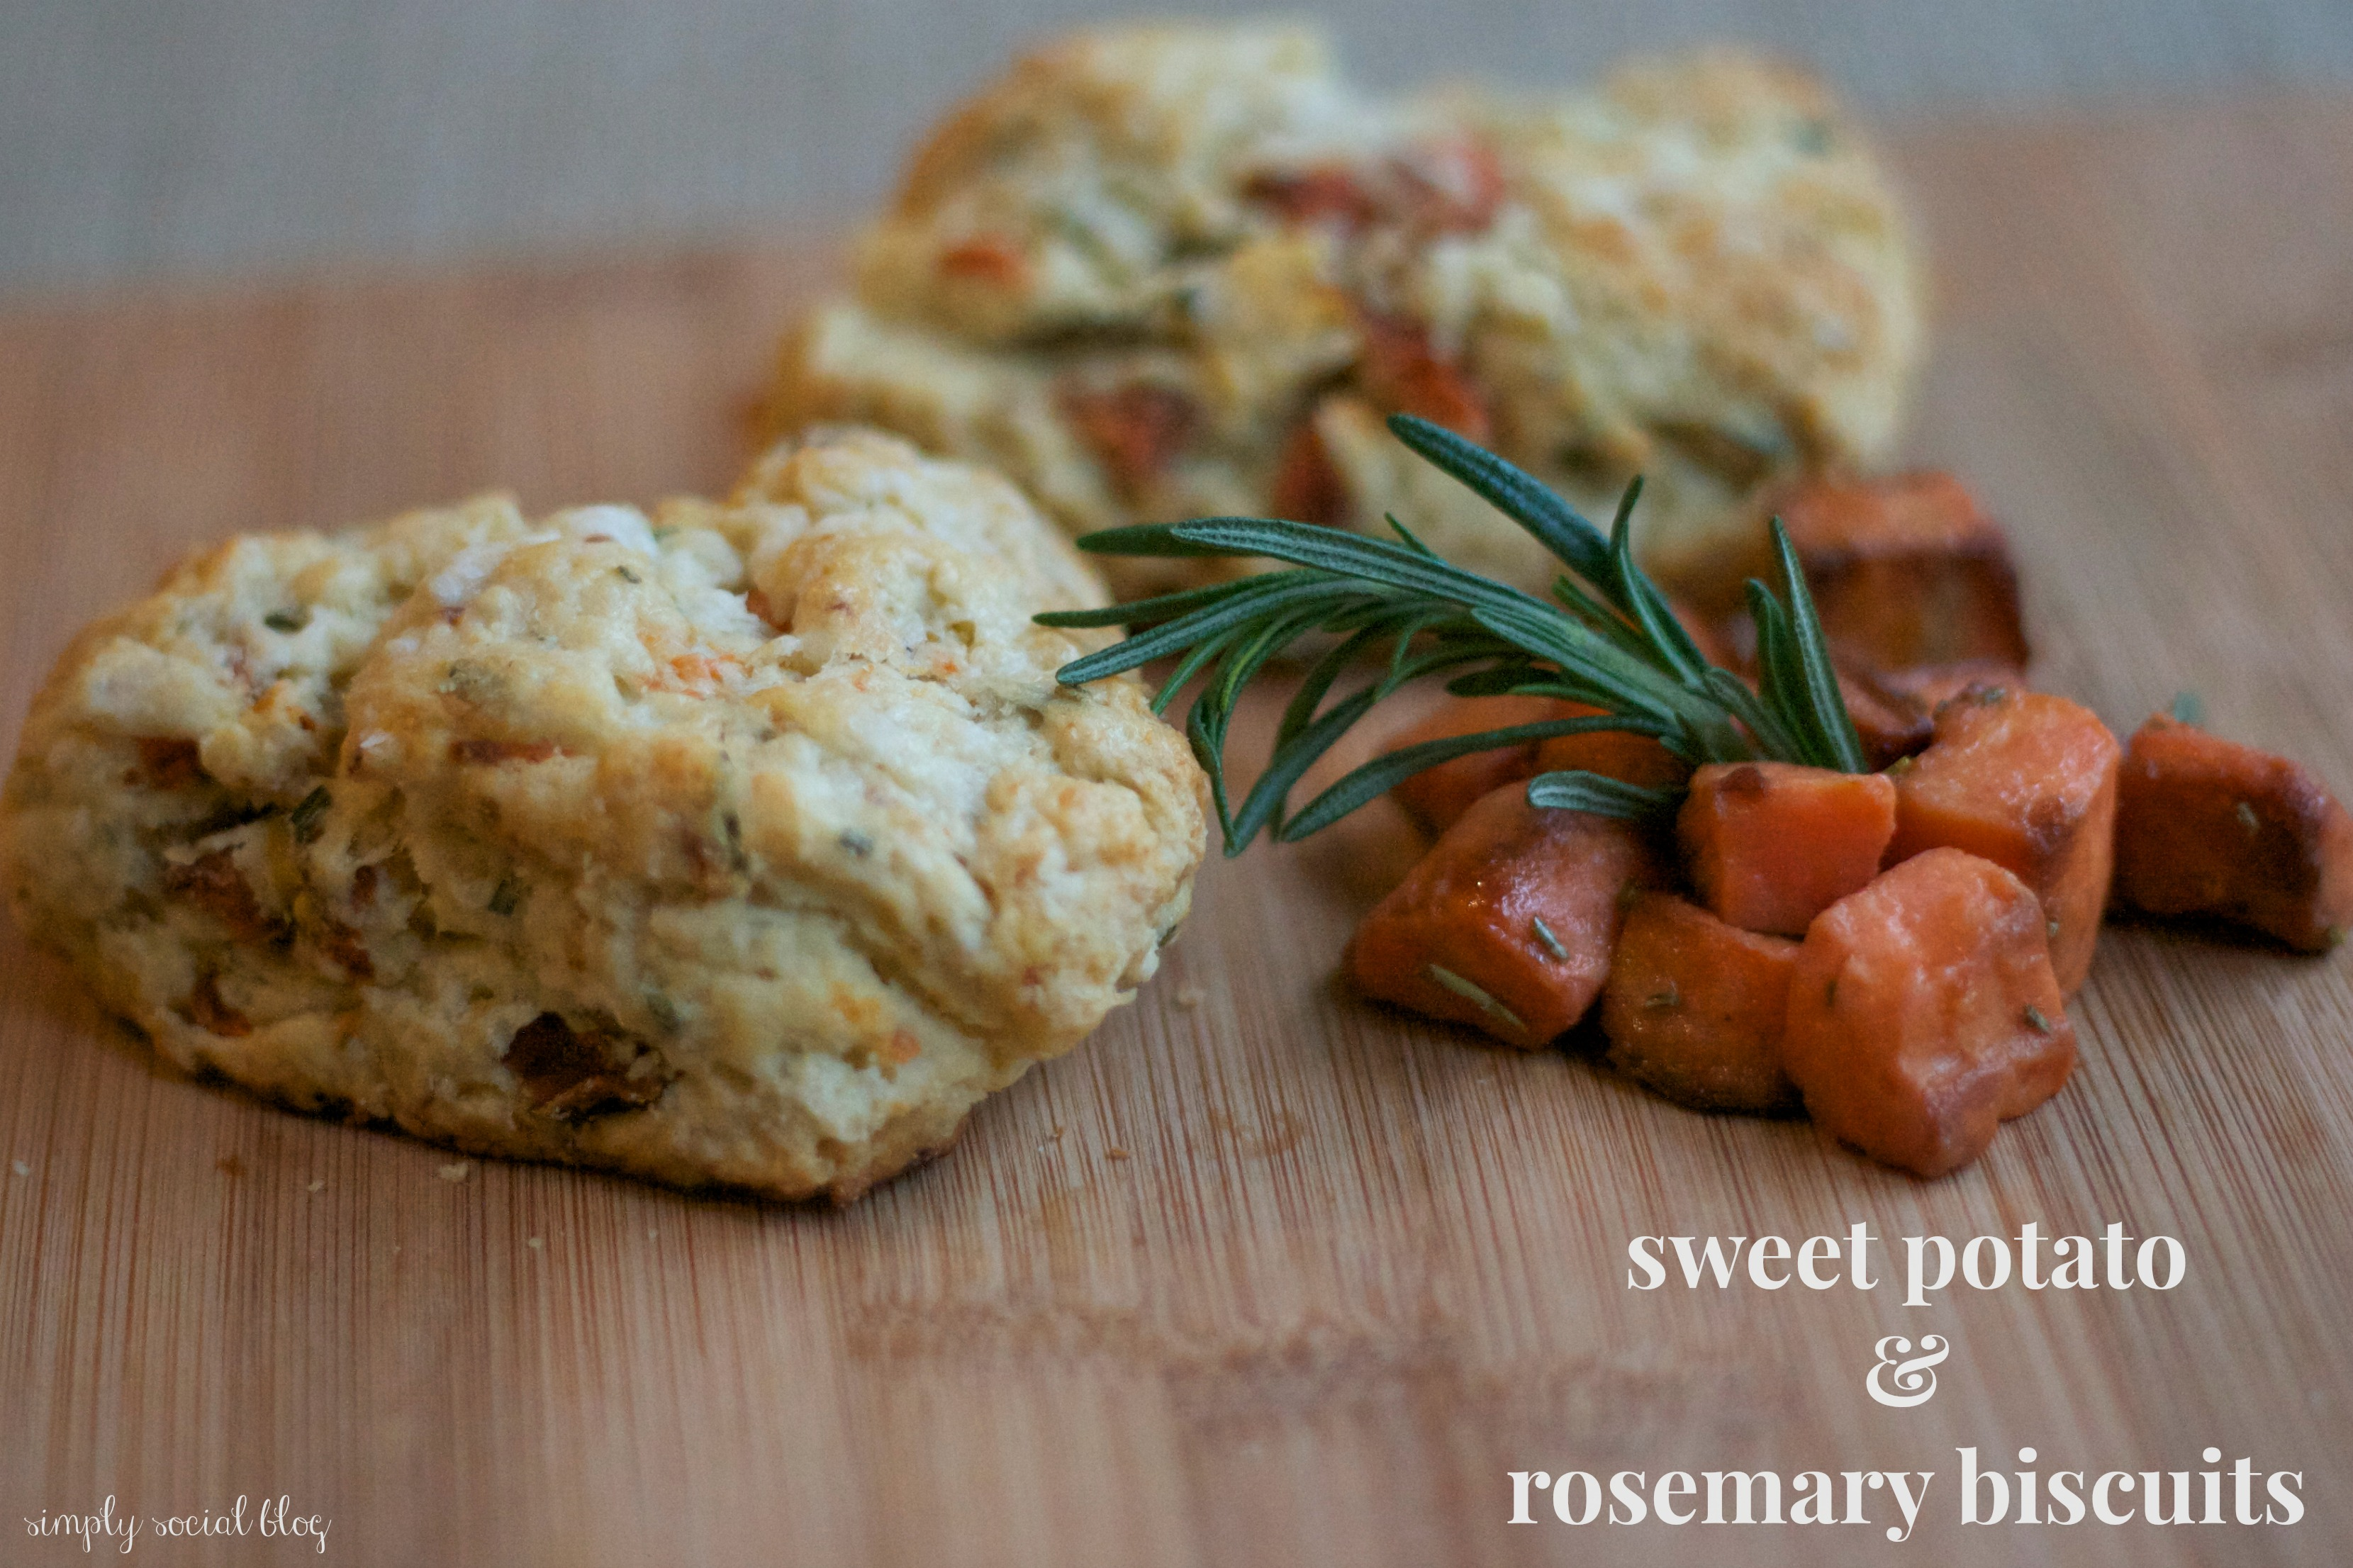 ... + images about Rosemary Biscuits on Pinterest | Biscuits, Biscuit